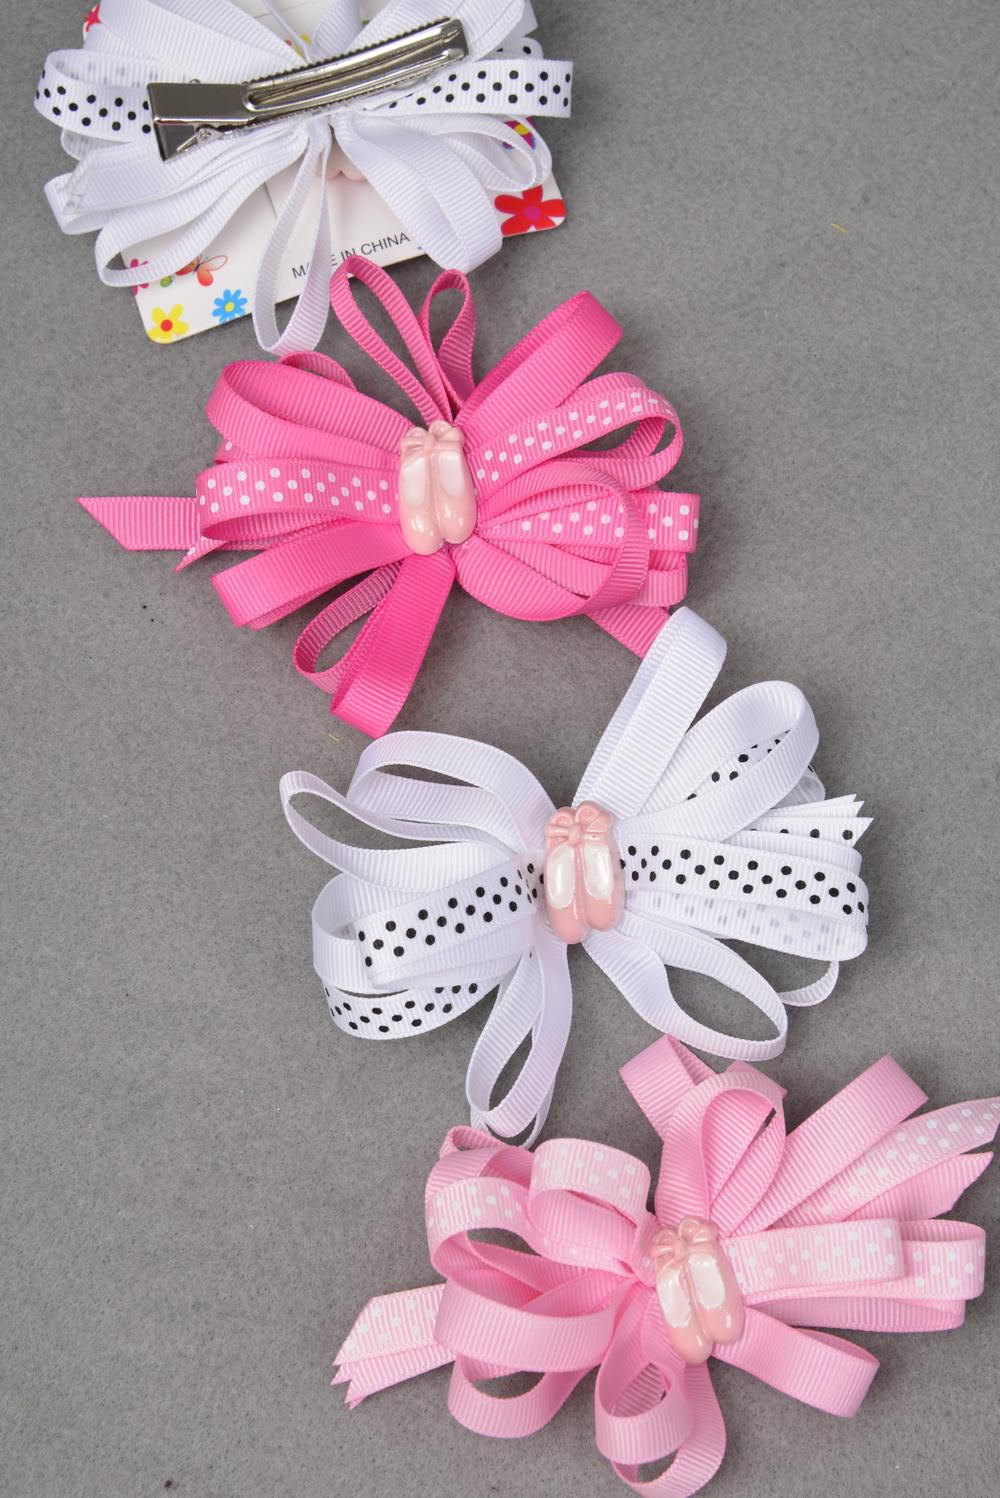 hair bow ballet shoes loop bow polka dots grosgrain bow. Black Bedroom Furniture Sets. Home Design Ideas